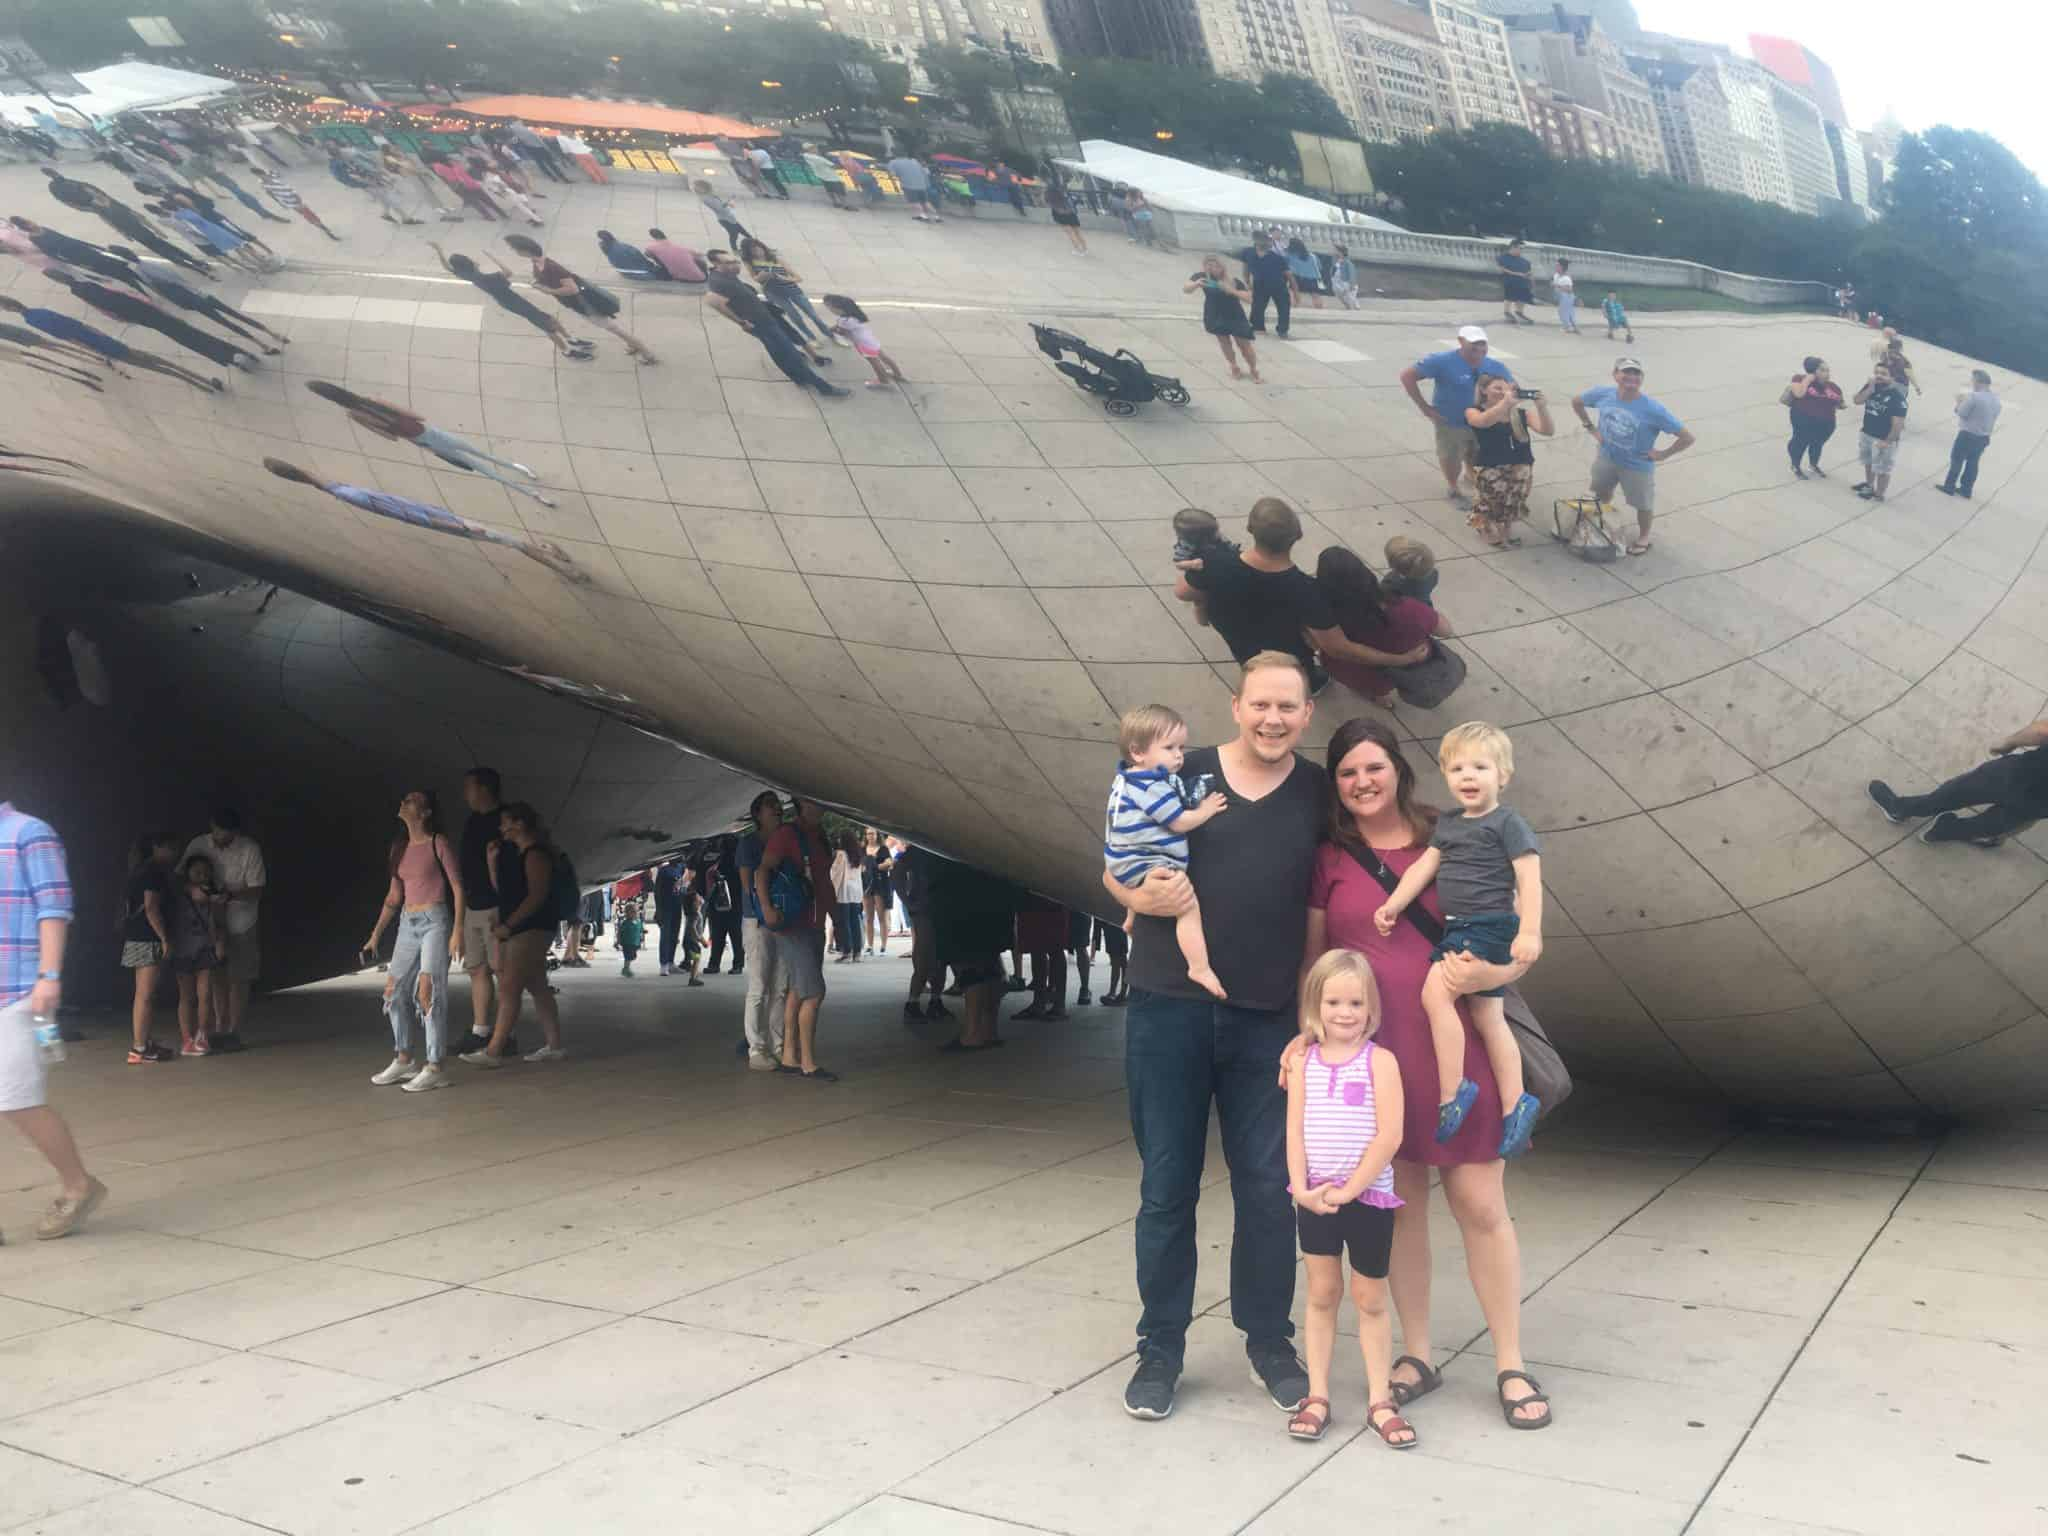 Family in Chicago in front of the bean statue